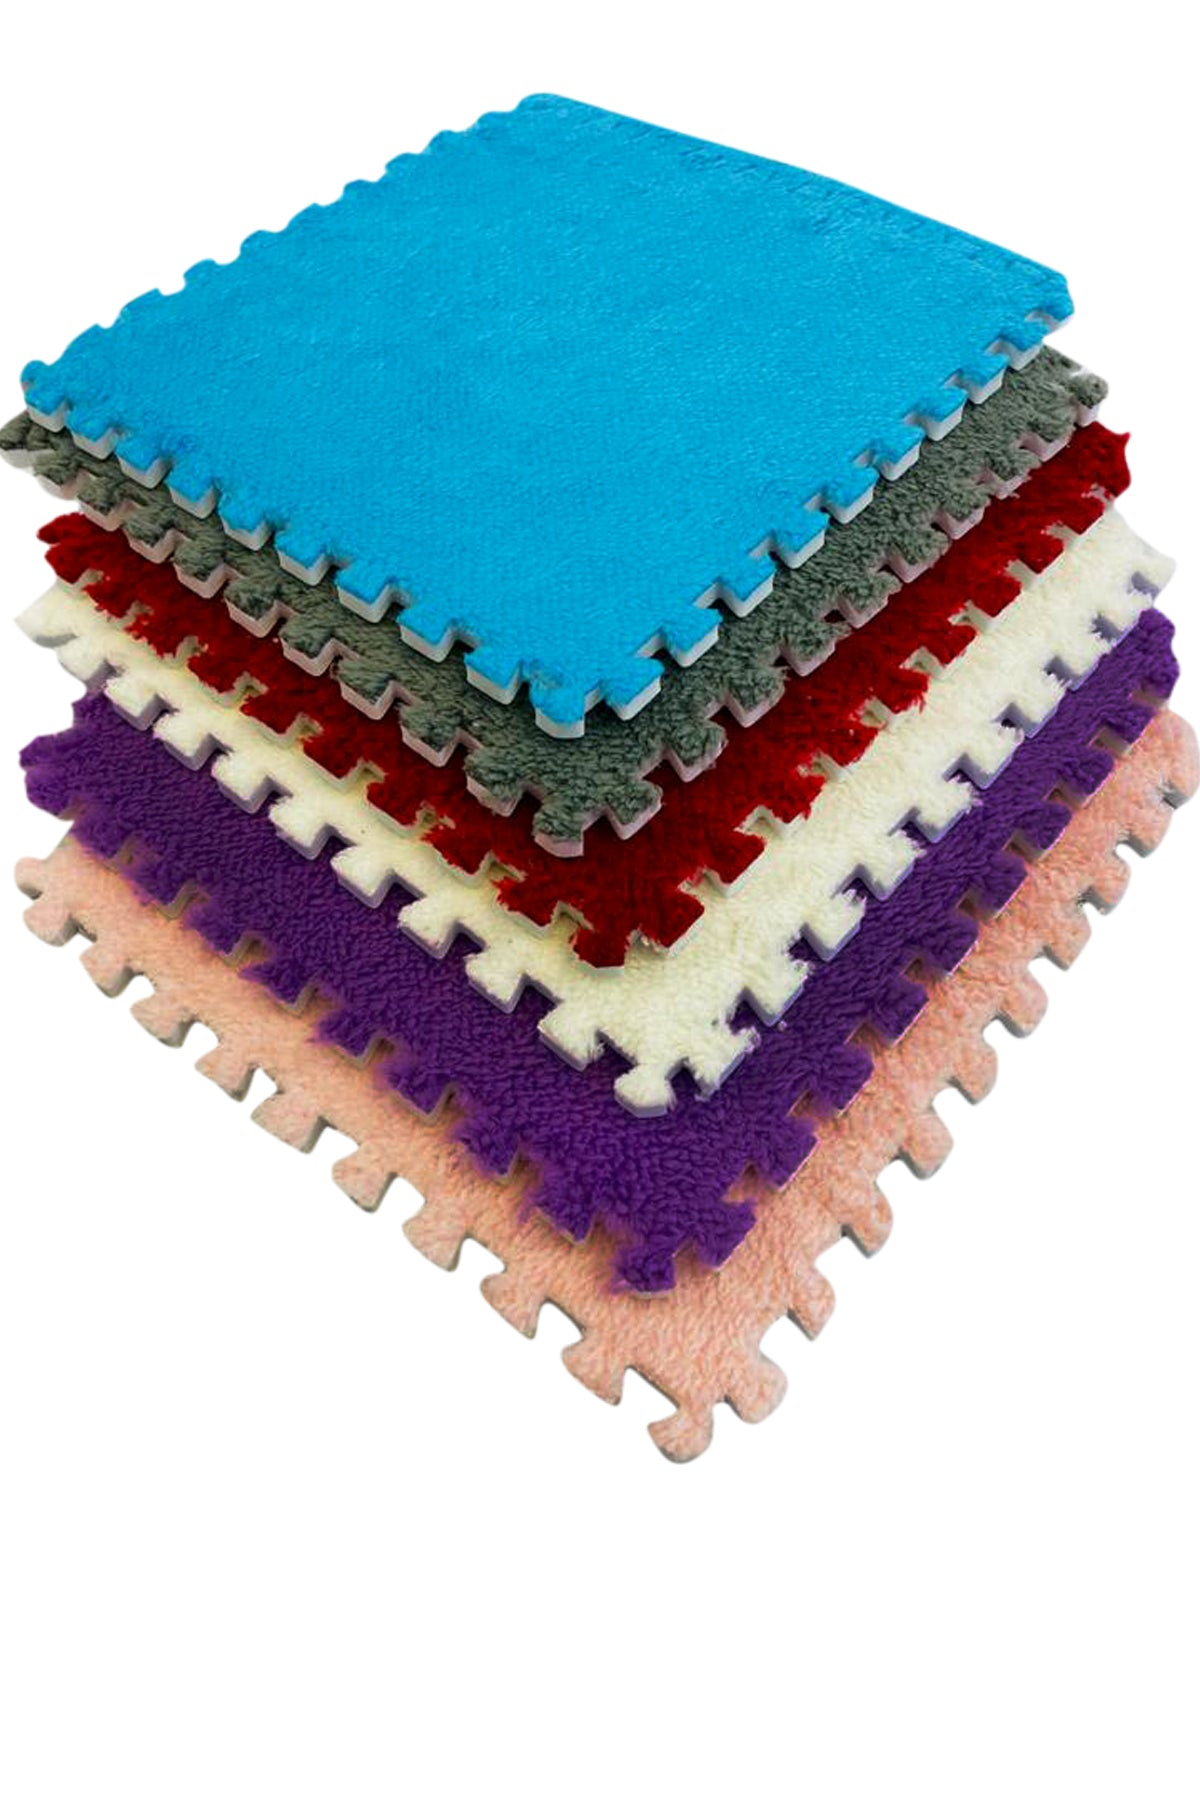 10pcs EVA Plush Puzzle Area Rug Floor Mats with soft fur - Design your Own Interlock Rug Tiles - Easy Clean Play Mat, Yoga, Exercise Each Tile 30 x 30 cm